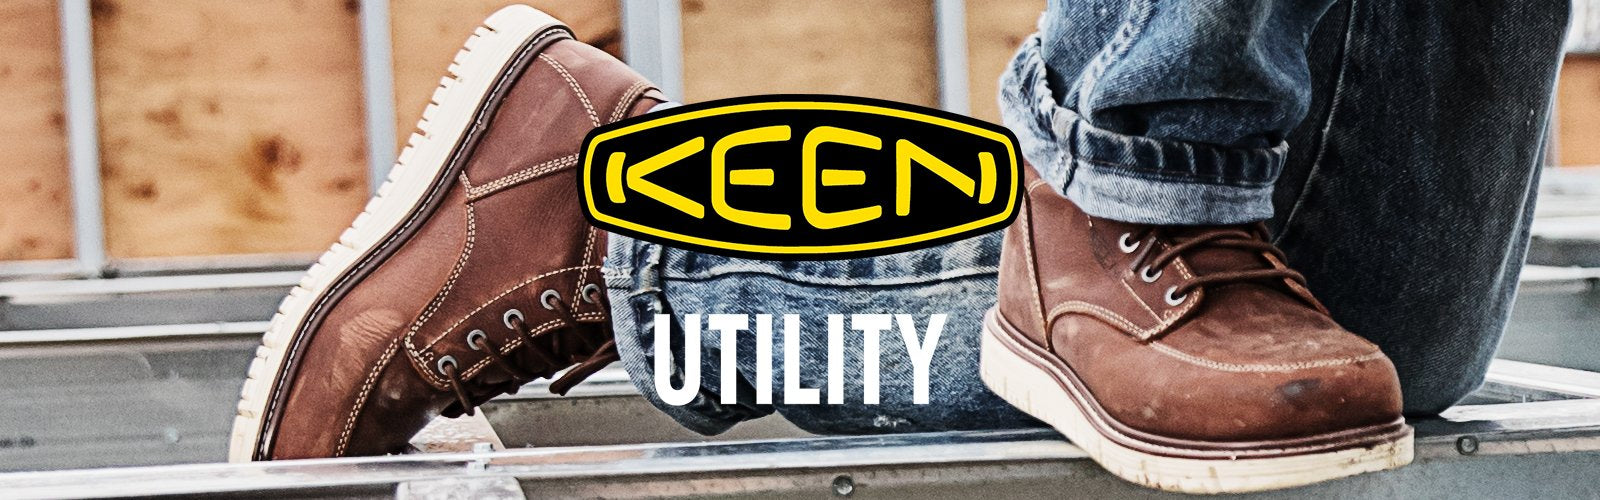 Shop Keen desktop